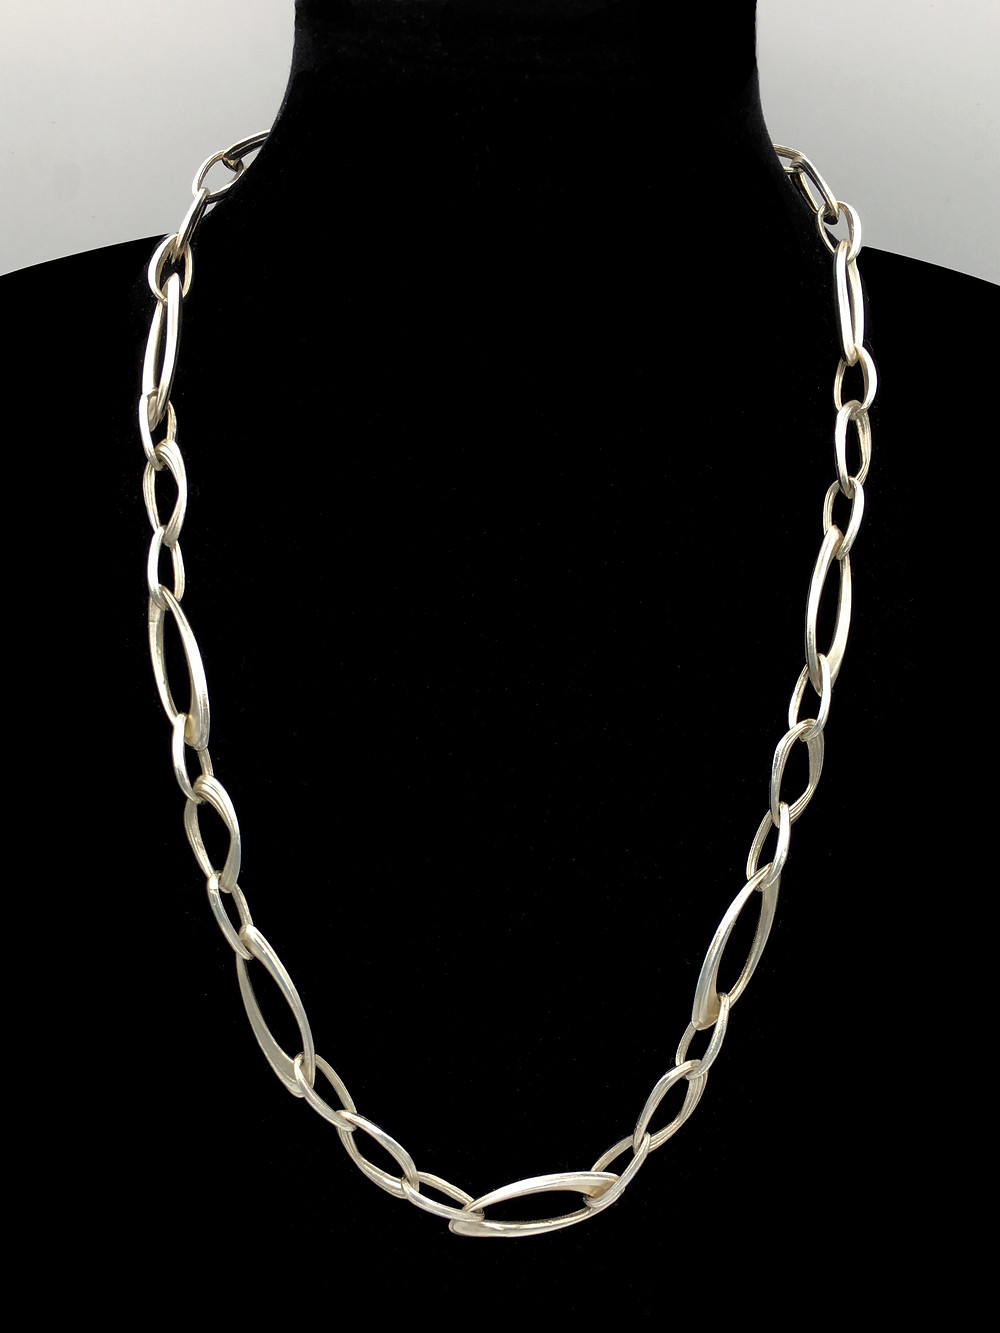 "Azores Link Necklace 22"" in Sterling Silver by Original Eve Designs"